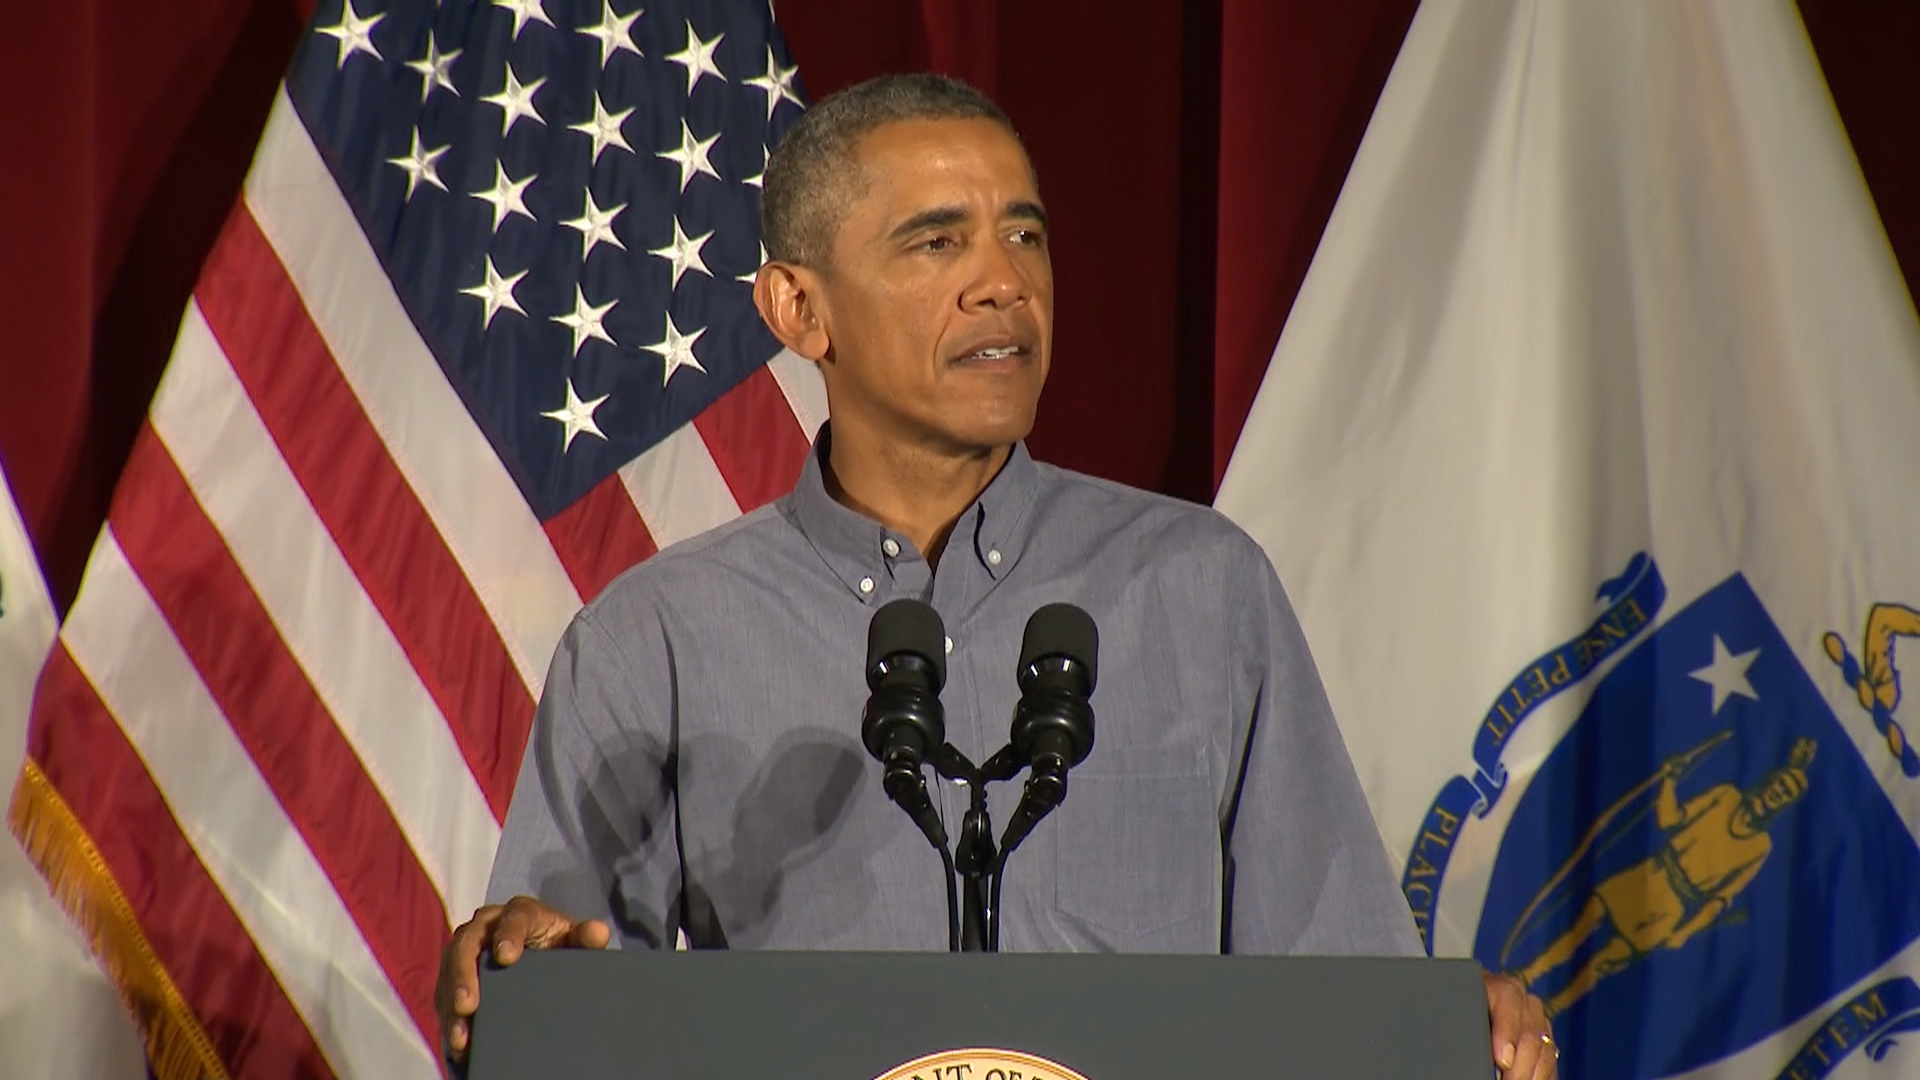 Obama Extends Paid Sick Leave in Labor Day Tribute to Working 'Values'